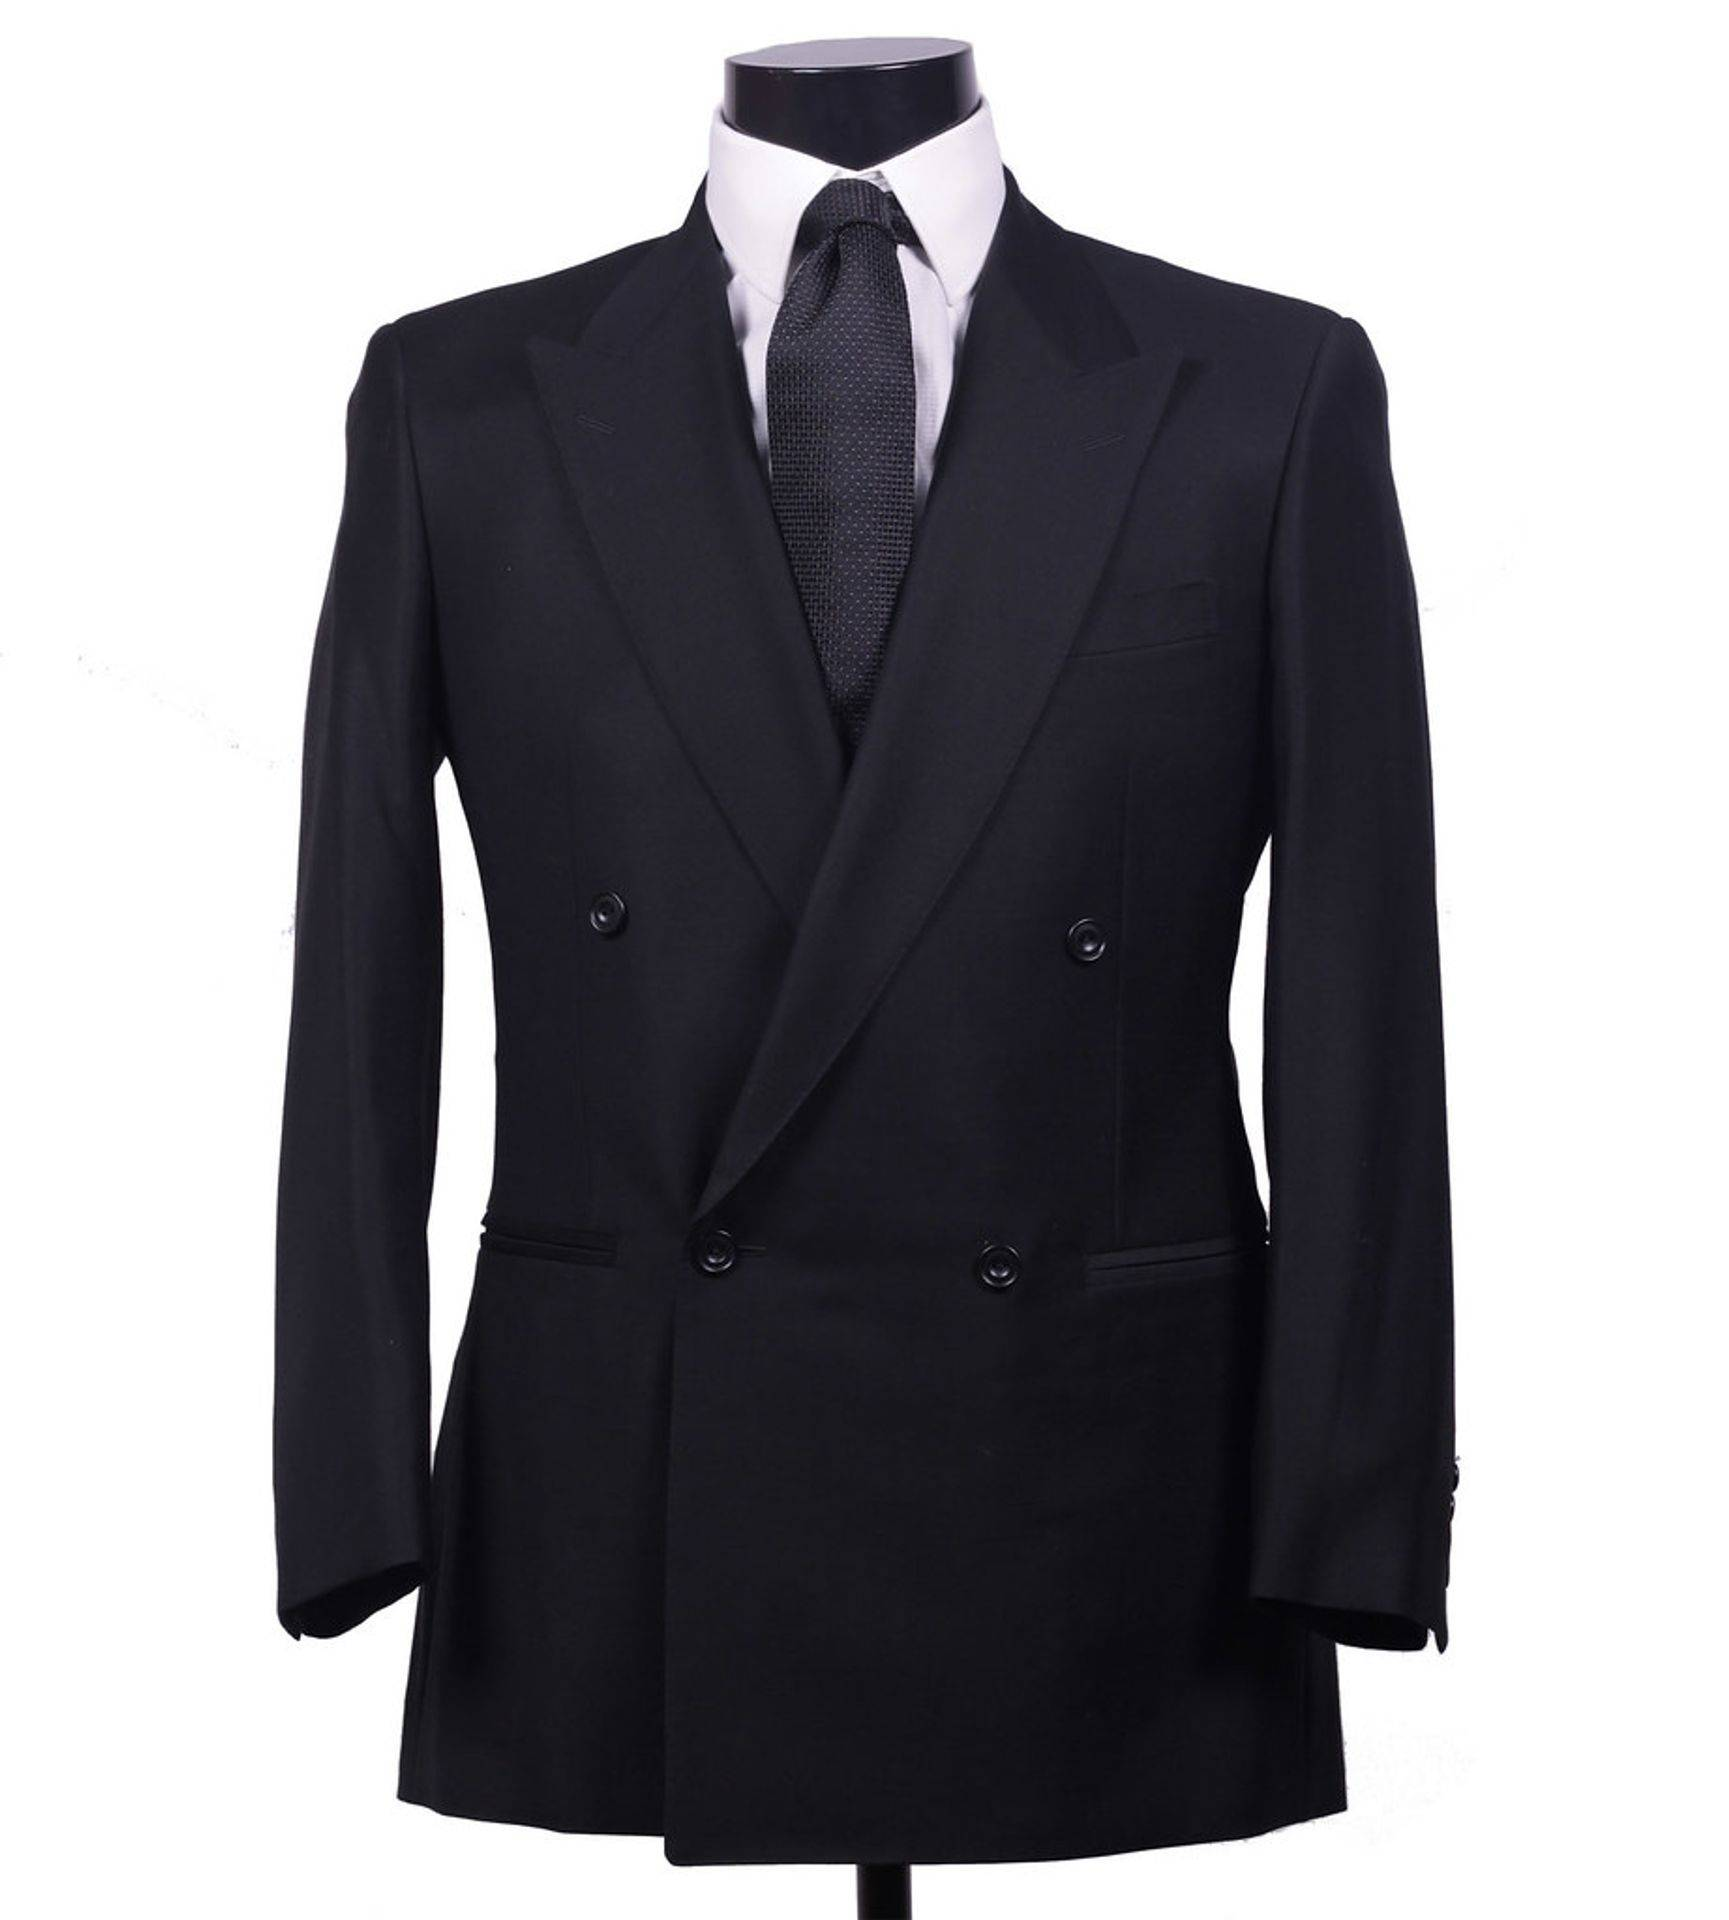 sport coat, suit jacket